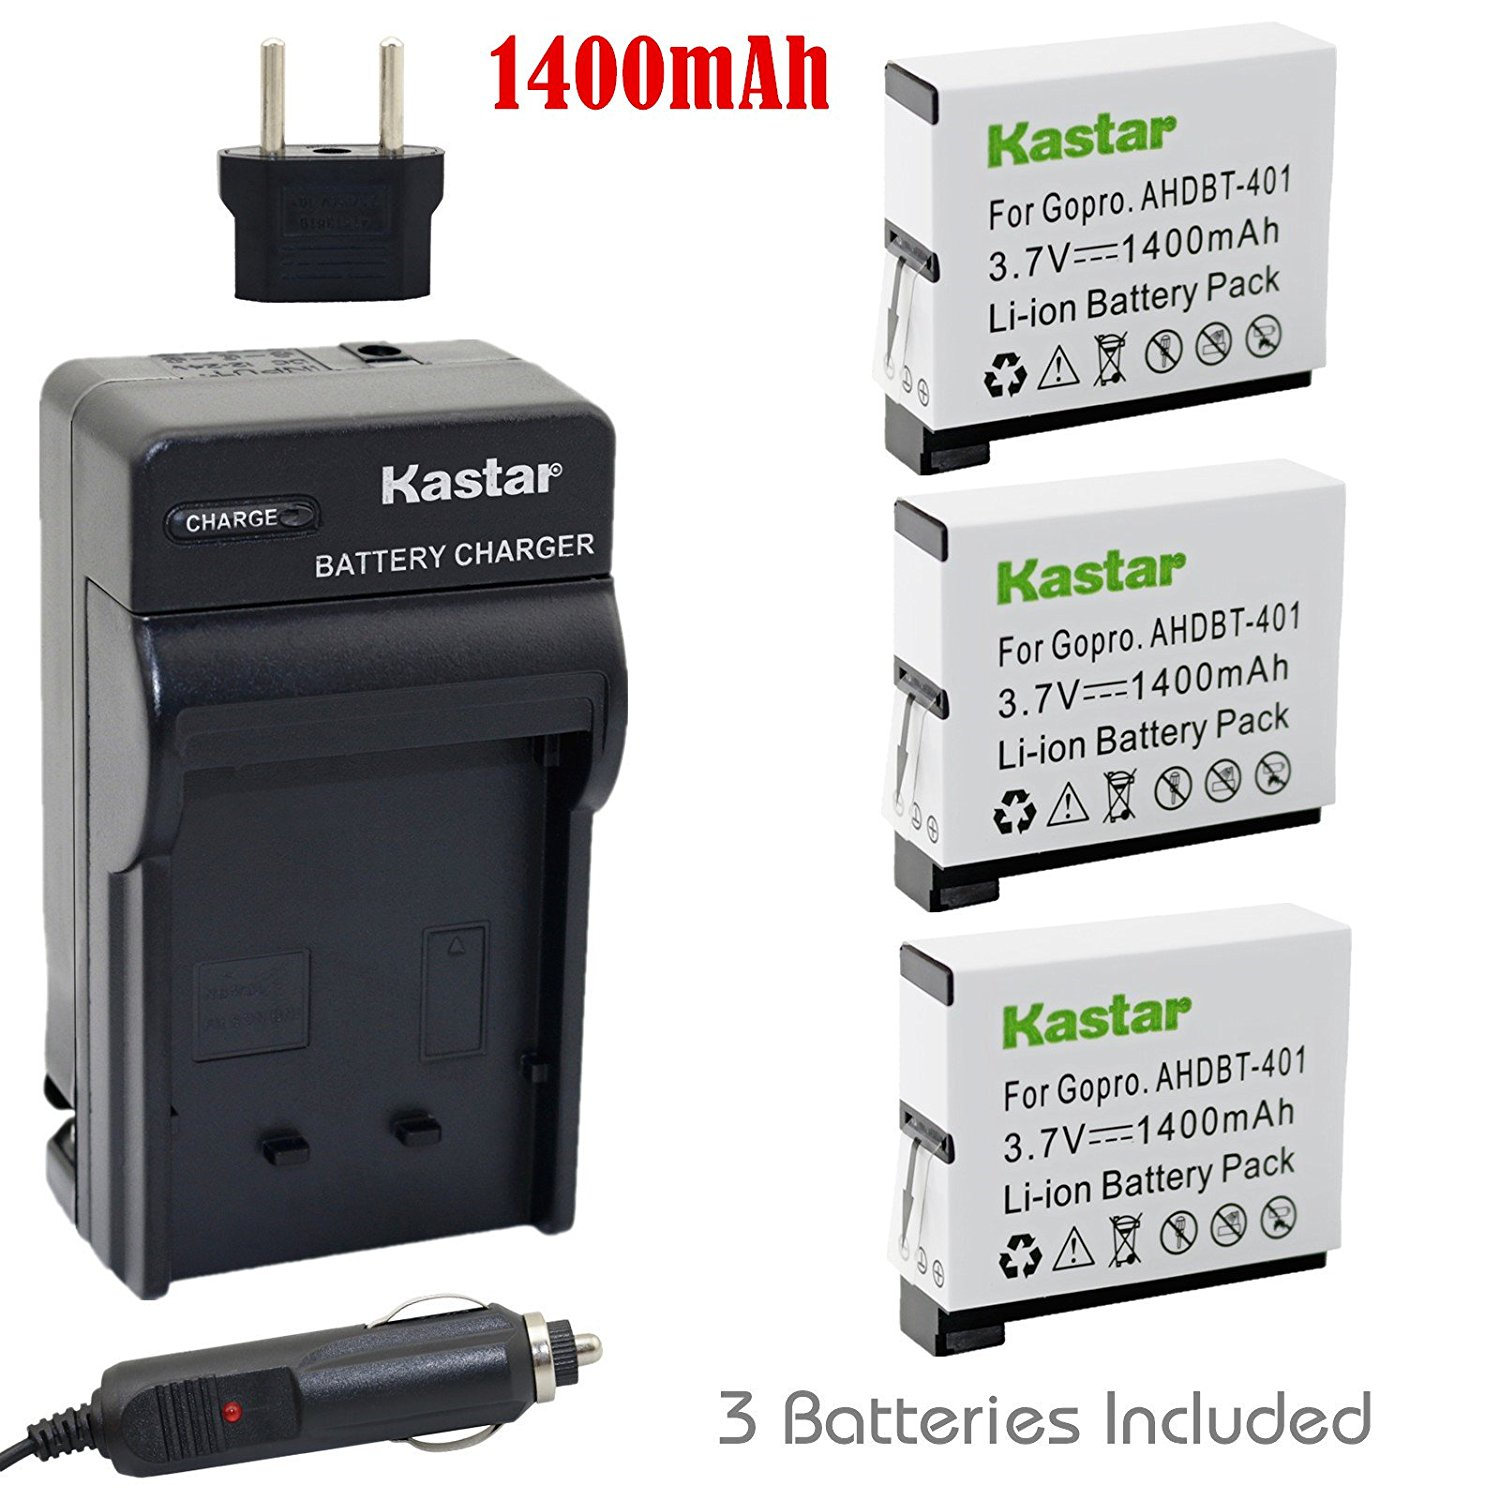 Kastar Battery (3-Pack) and Charger Kit for GoPro HERO4 and GoPro AHDBT-401, AHBBP-401 Sport Cameras